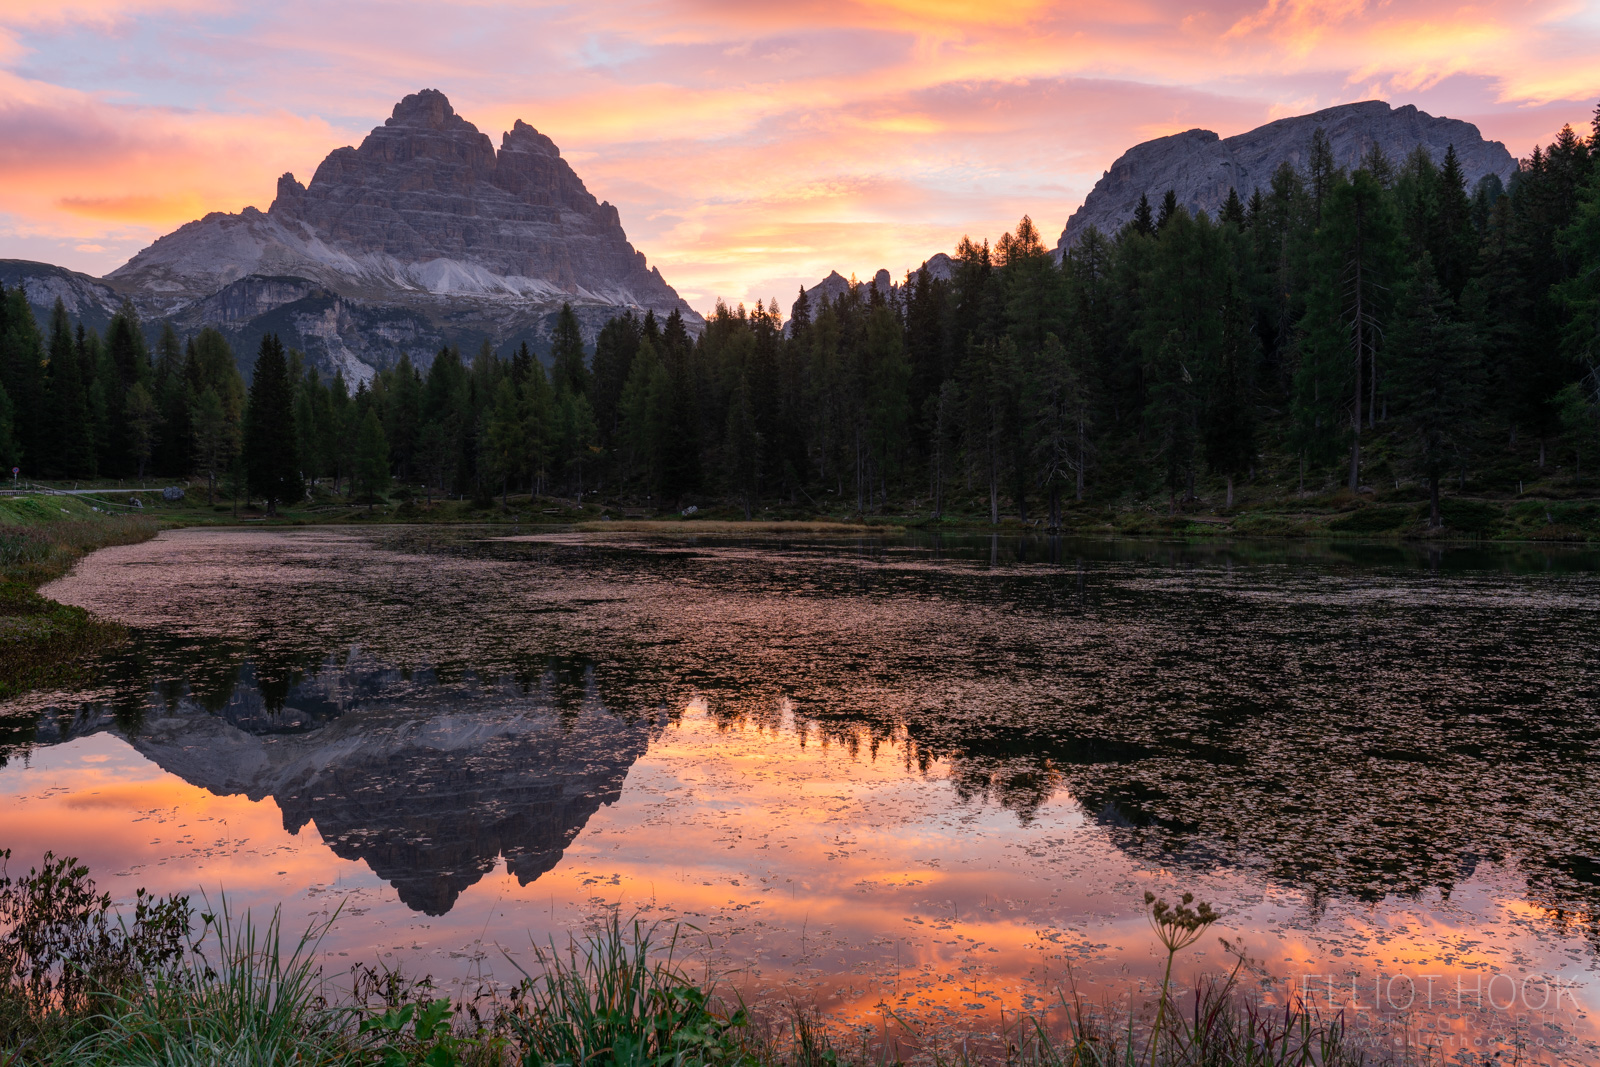 Sunrise at Lago Antorno in the Dolomites